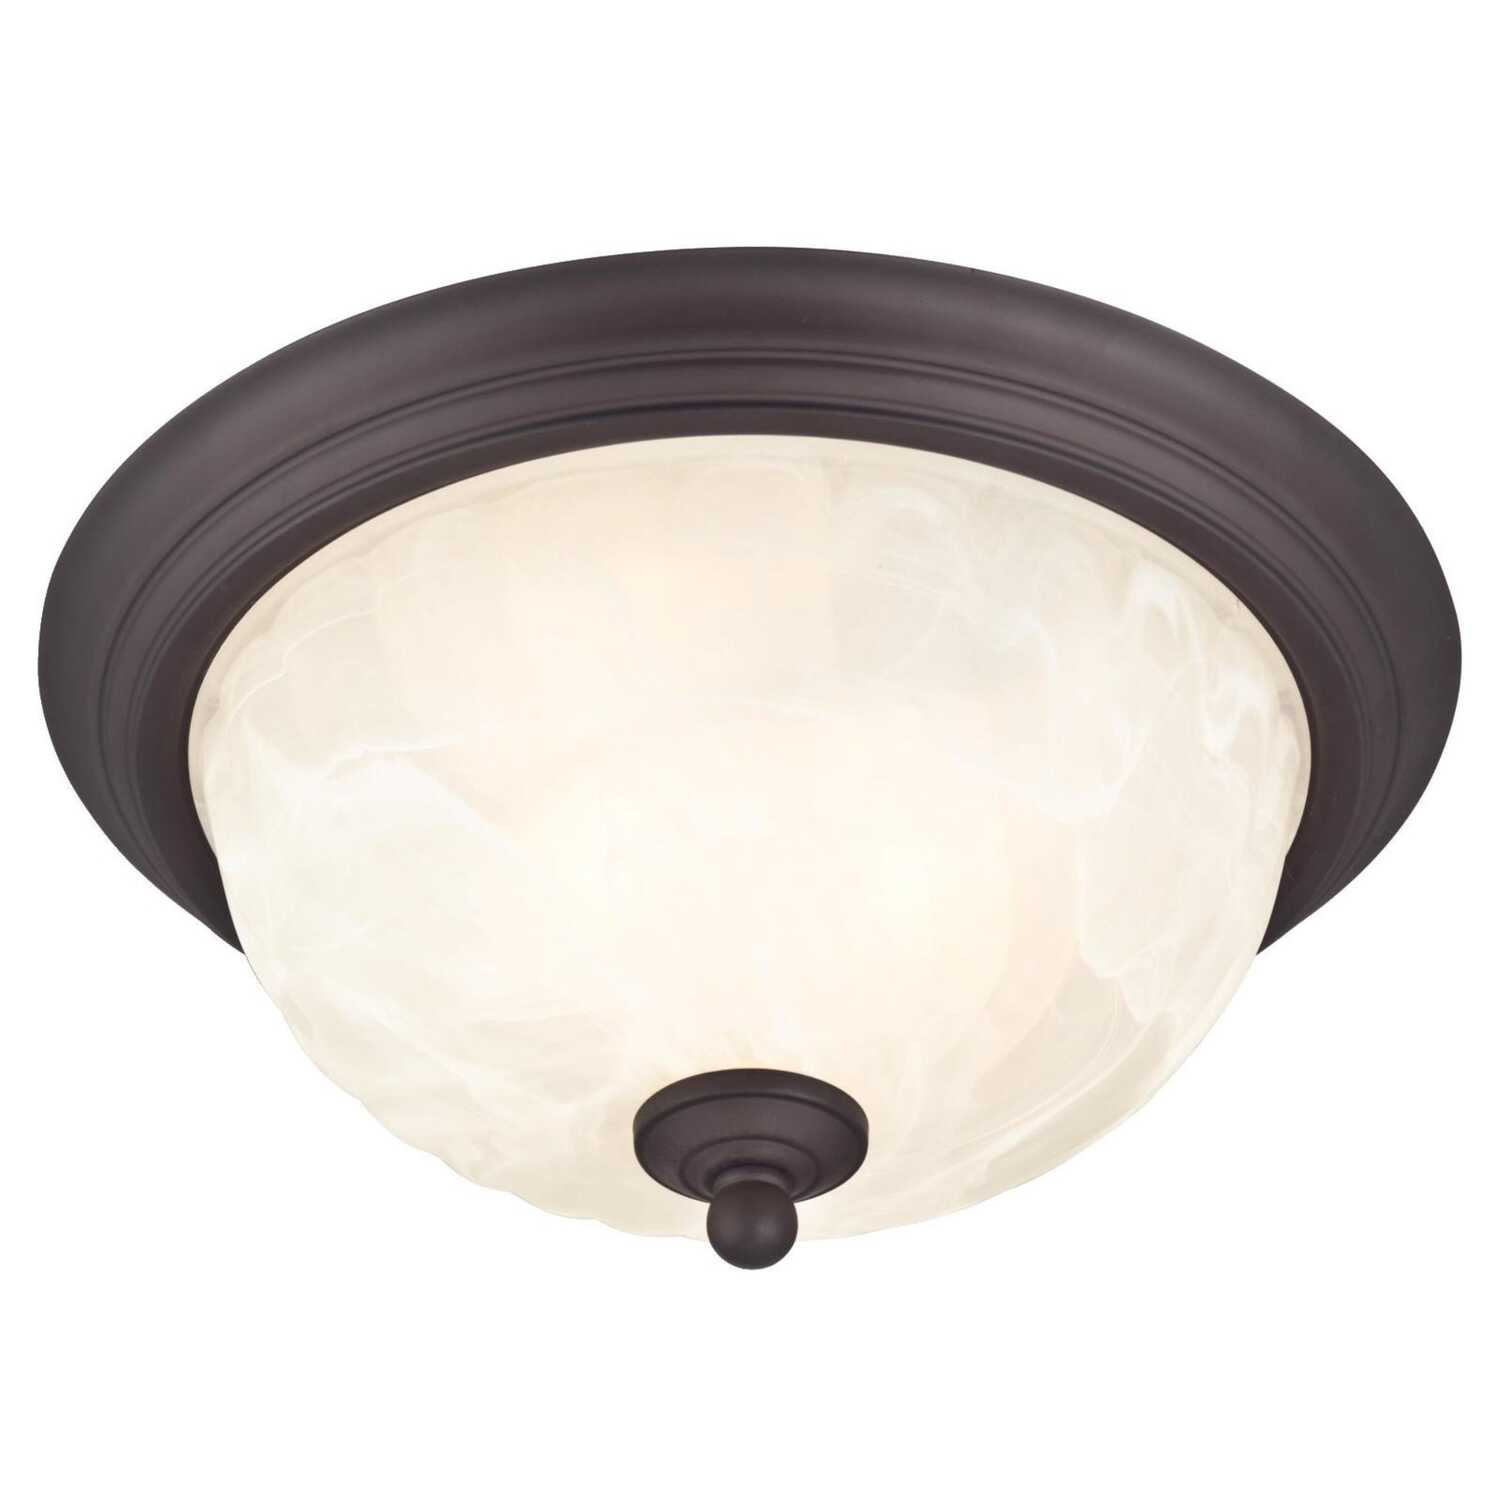 Westinghouse  Naveen  6 in. H x 13 in. L x 13 in. W Ceiling Light